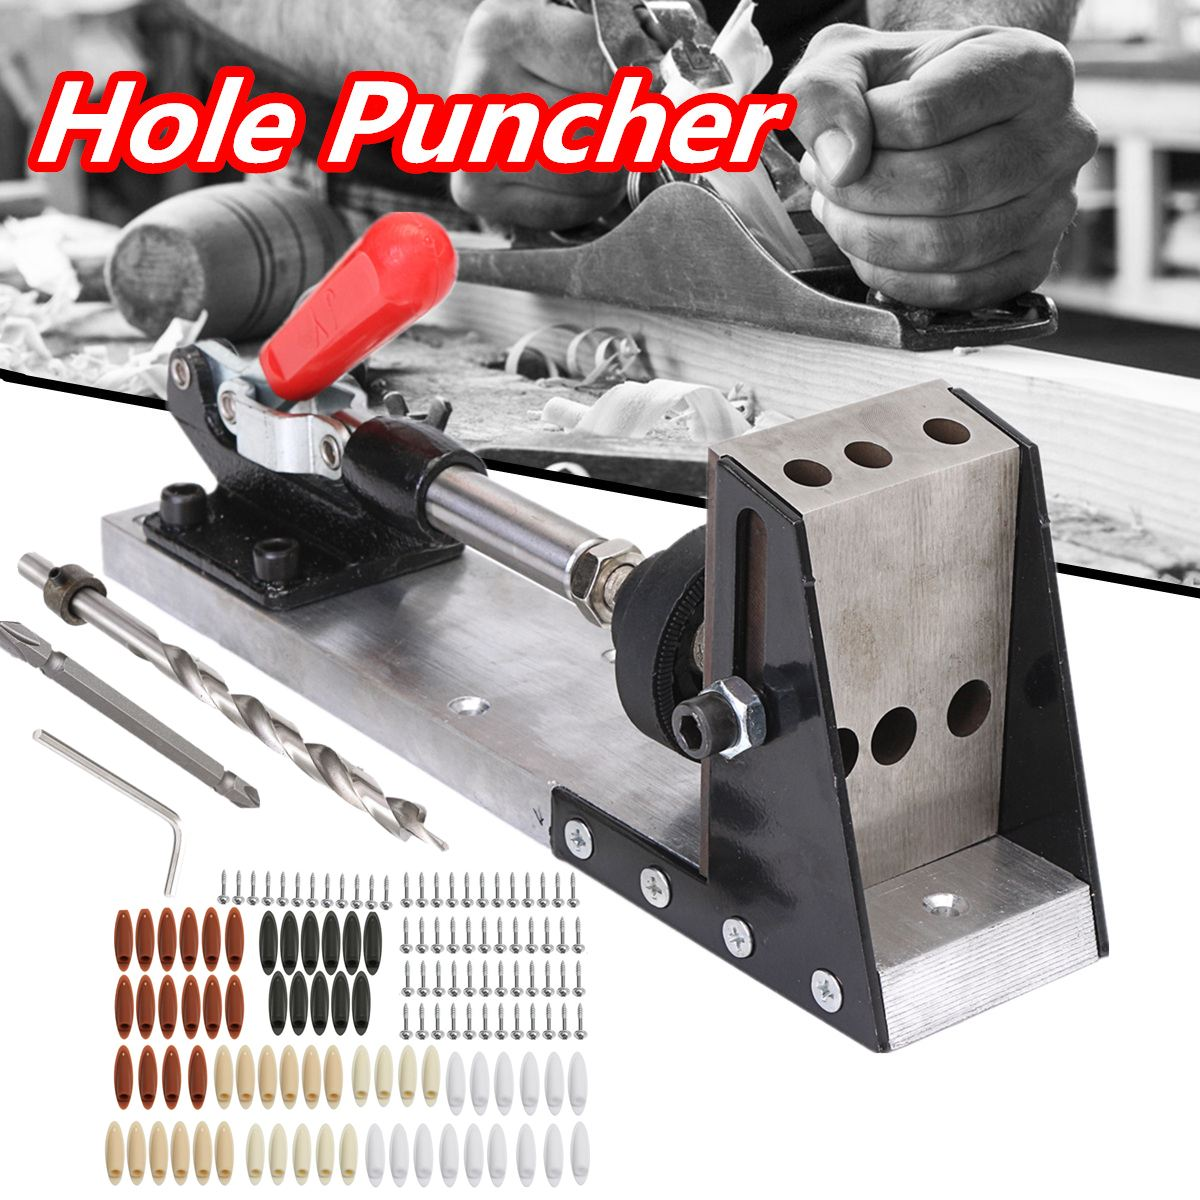 High Quality Woodworking Tool Pocket-Hole Puncher Jig Drill Guide Master Kit Carpenter Joinery System Woodworking Plug Cut Tool все цены